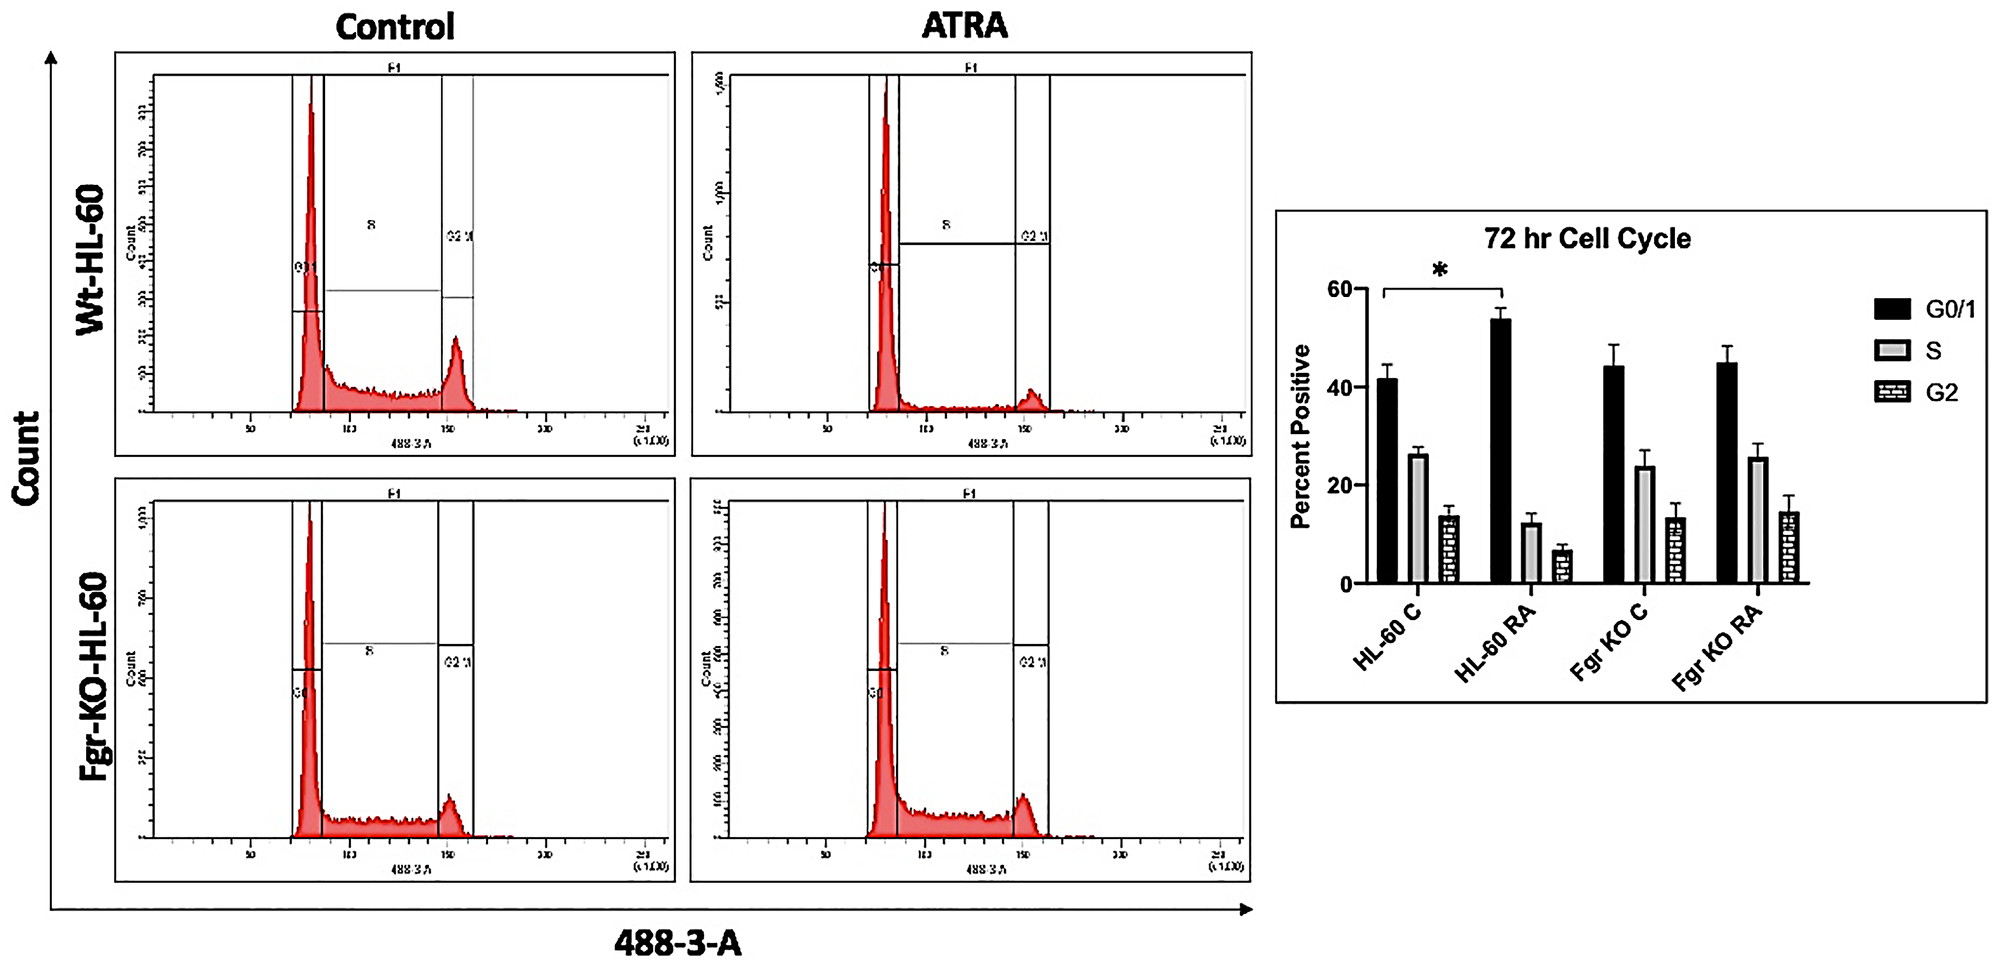 Cell cycle analysis of HL-60 wt and Fgr KO cells showing Fgr KO failed to undergo G1/0 cell cycle arrest.